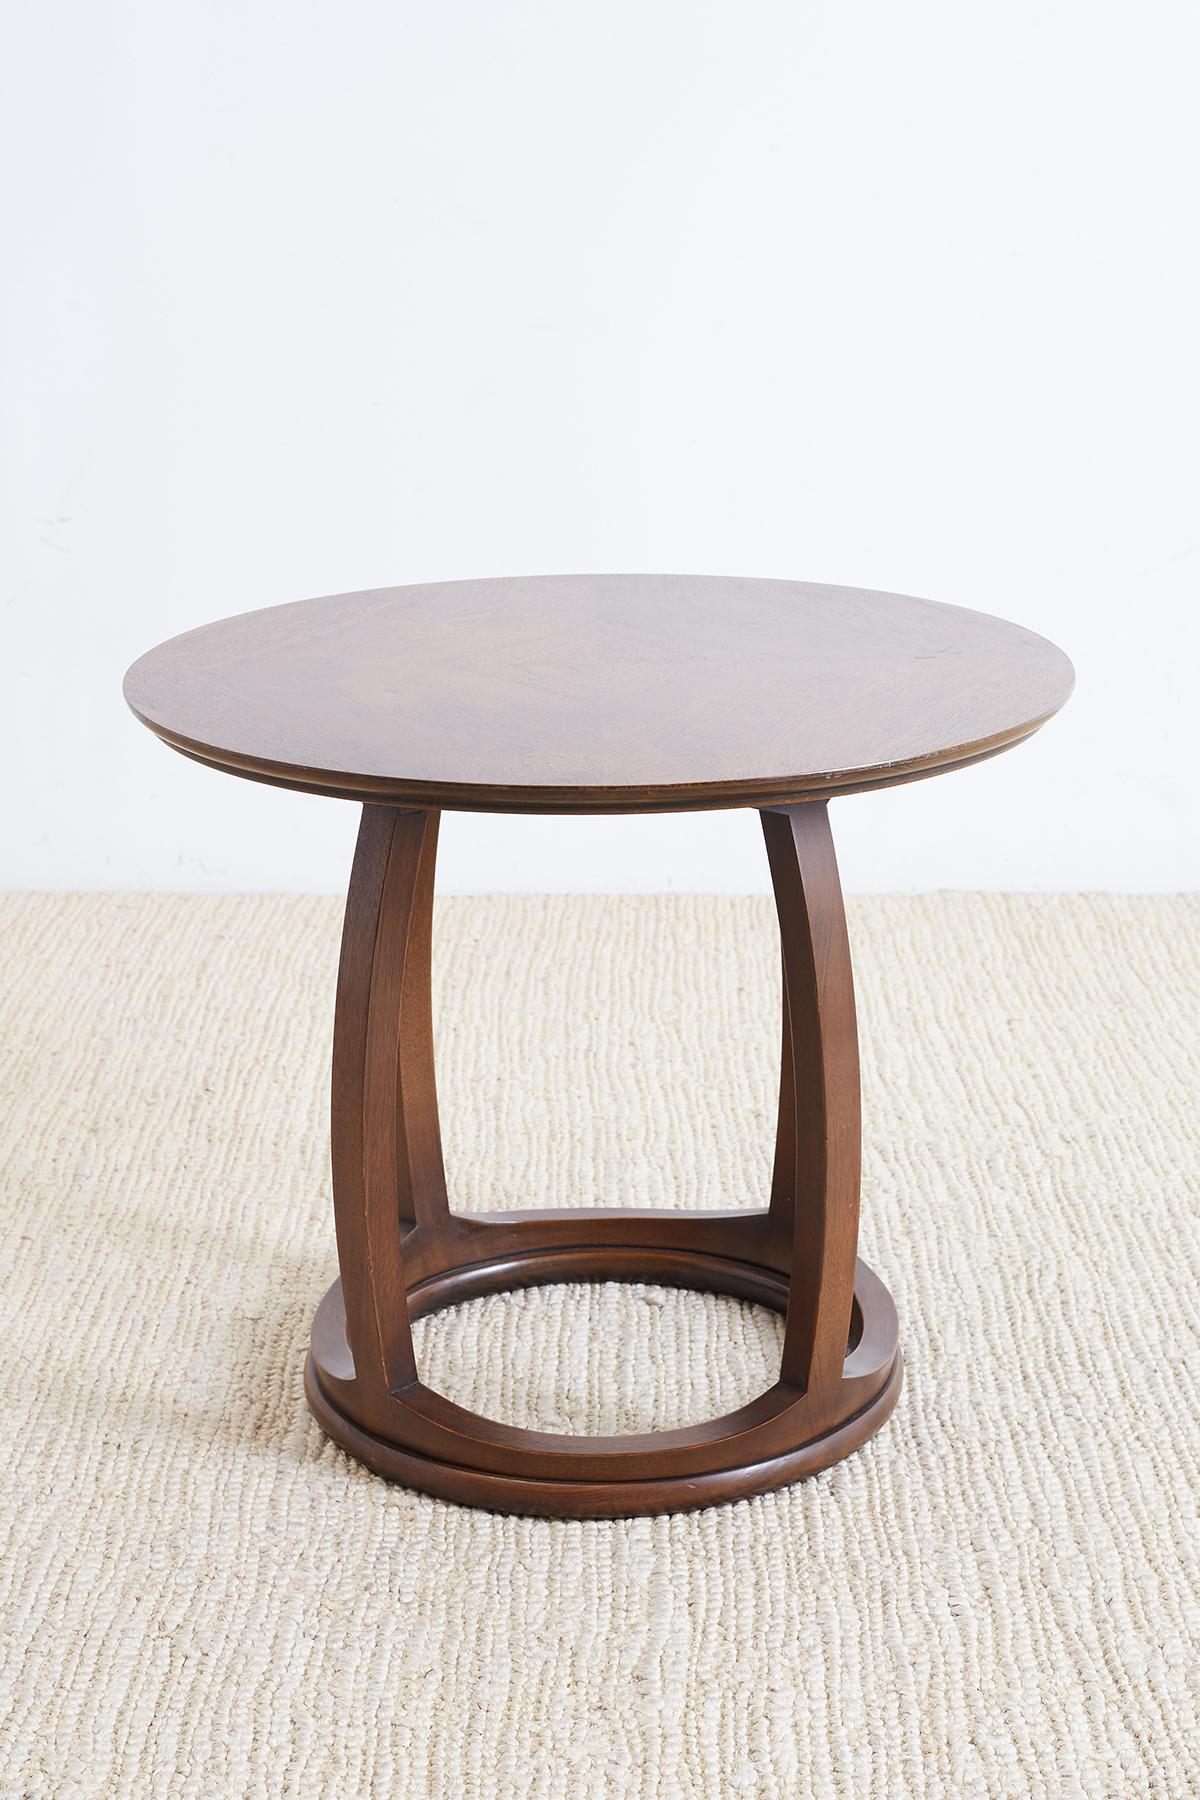 Handsome Mahogany Round Side Table Or Tabouret Table Having A Round Top And  A Drum Shaped